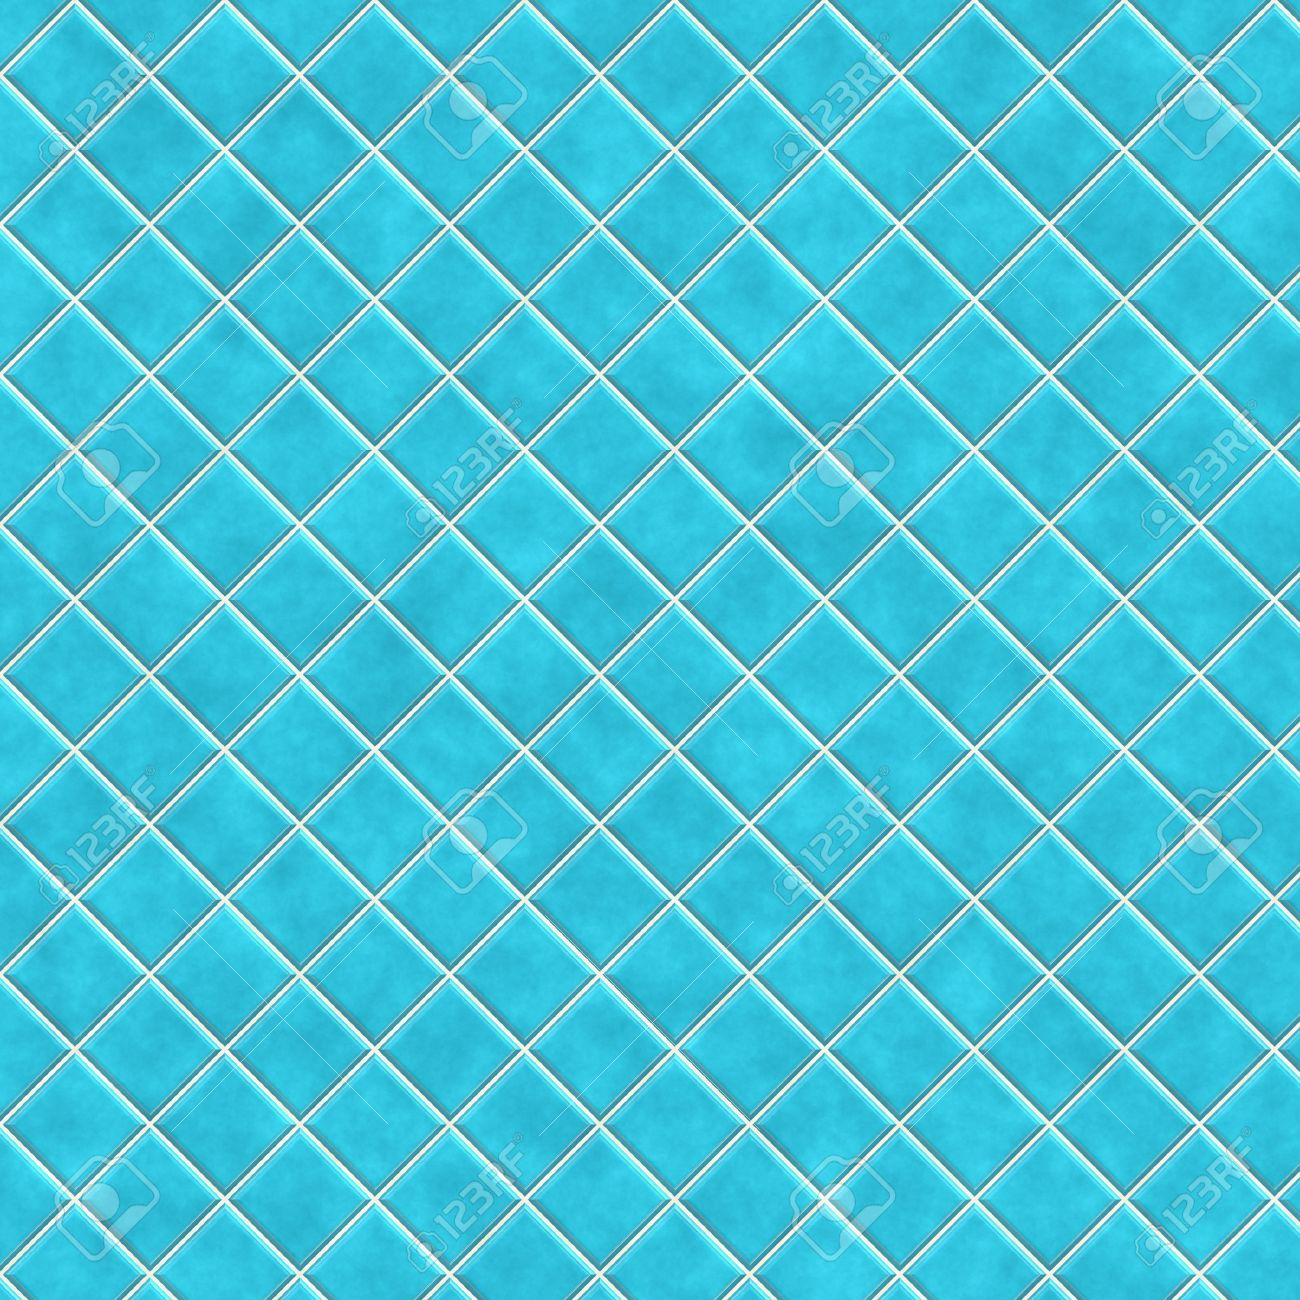 Blue floor tiles bathroom my web value blue ceramic stock photo 14666593 blue ceramic tiles bathroom dailygadgetfo Image collections